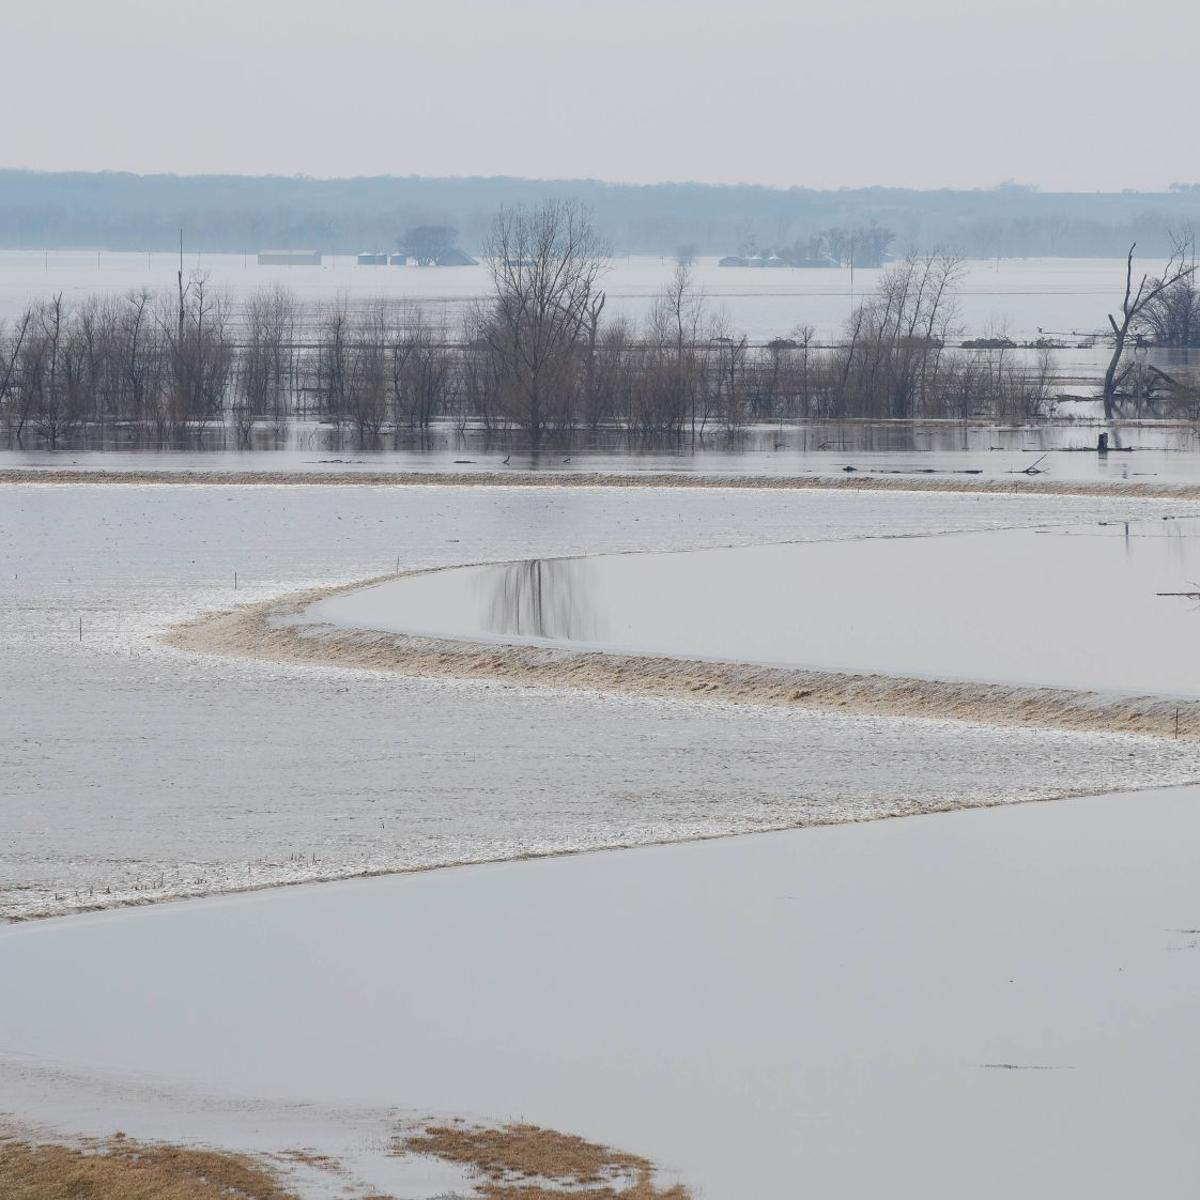 Corps making progress on repairing Missouri River levees